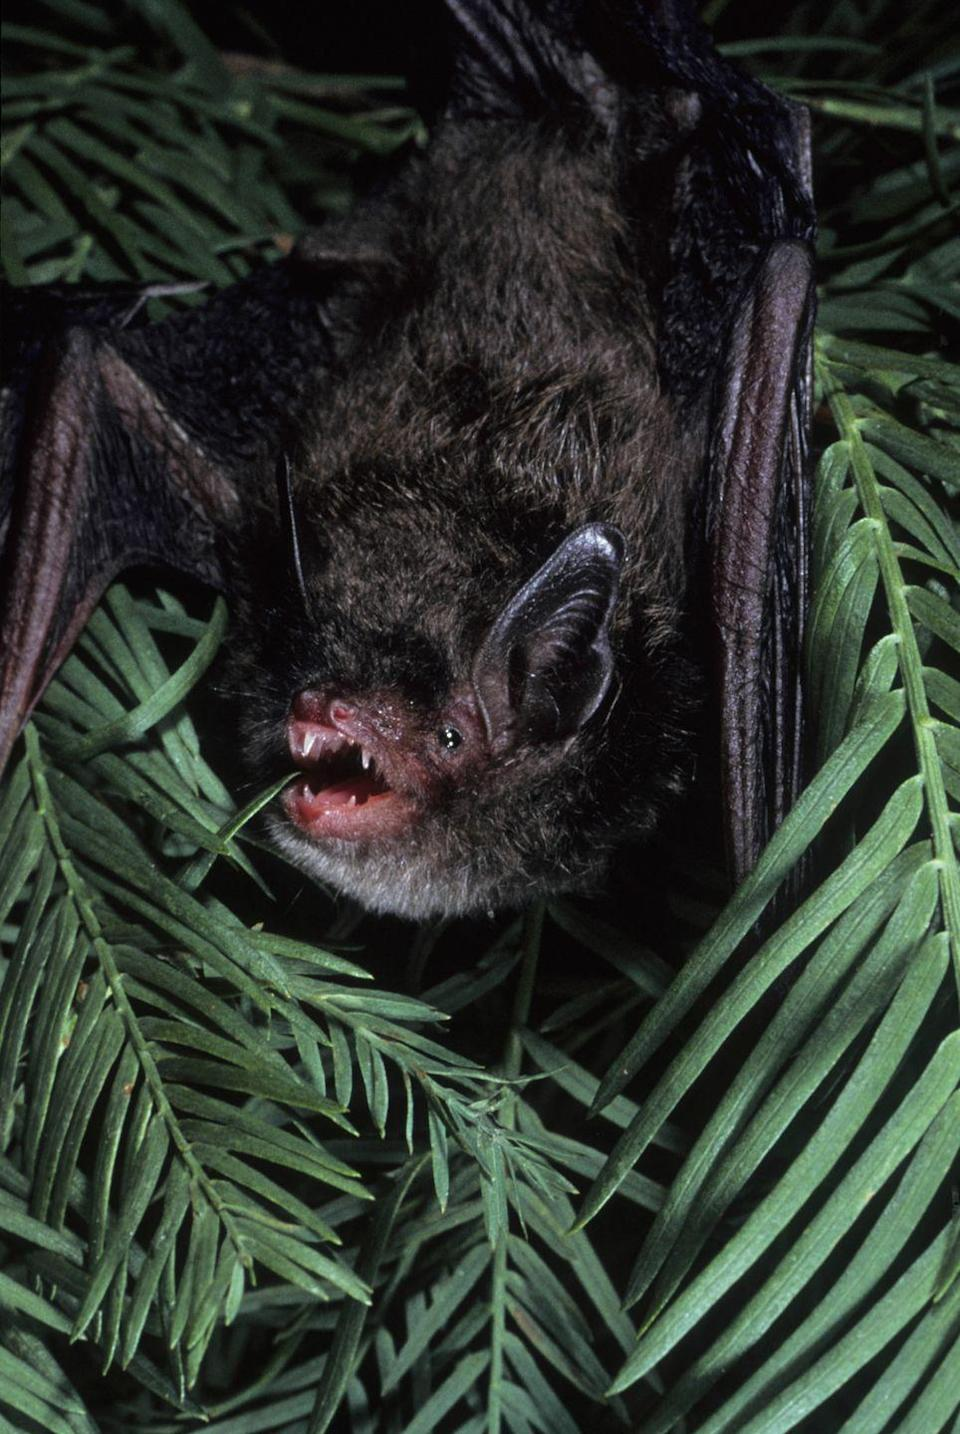 <p><strong>Indiana Bat - </strong>Native to North America and found in many states, the Indiana Bat has had a 57% population drop in the last 50 years. Who's to blame? Human disturbance and natural predators during its hibernation period. </p>